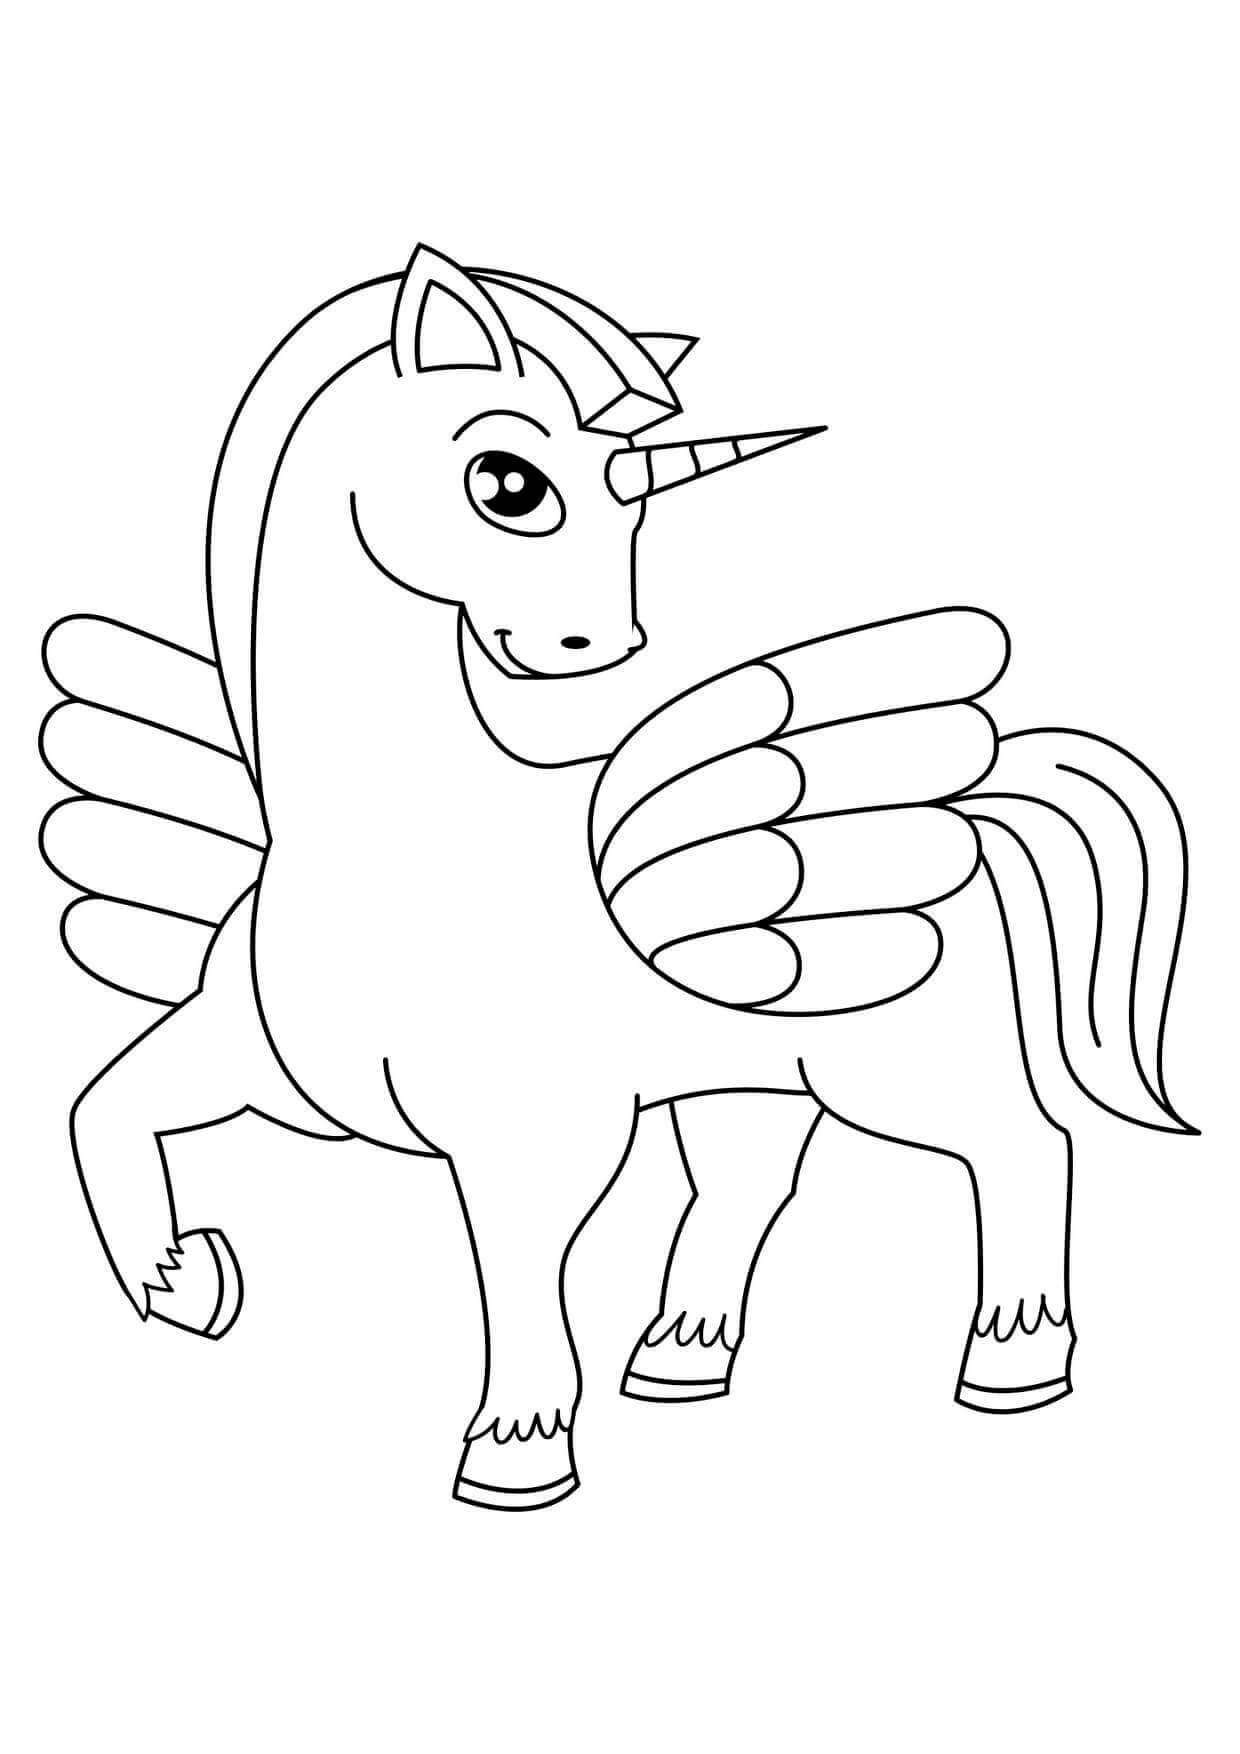 coloring page of unicorn unicorn coloring pages free download on clipartmag unicorn of page coloring